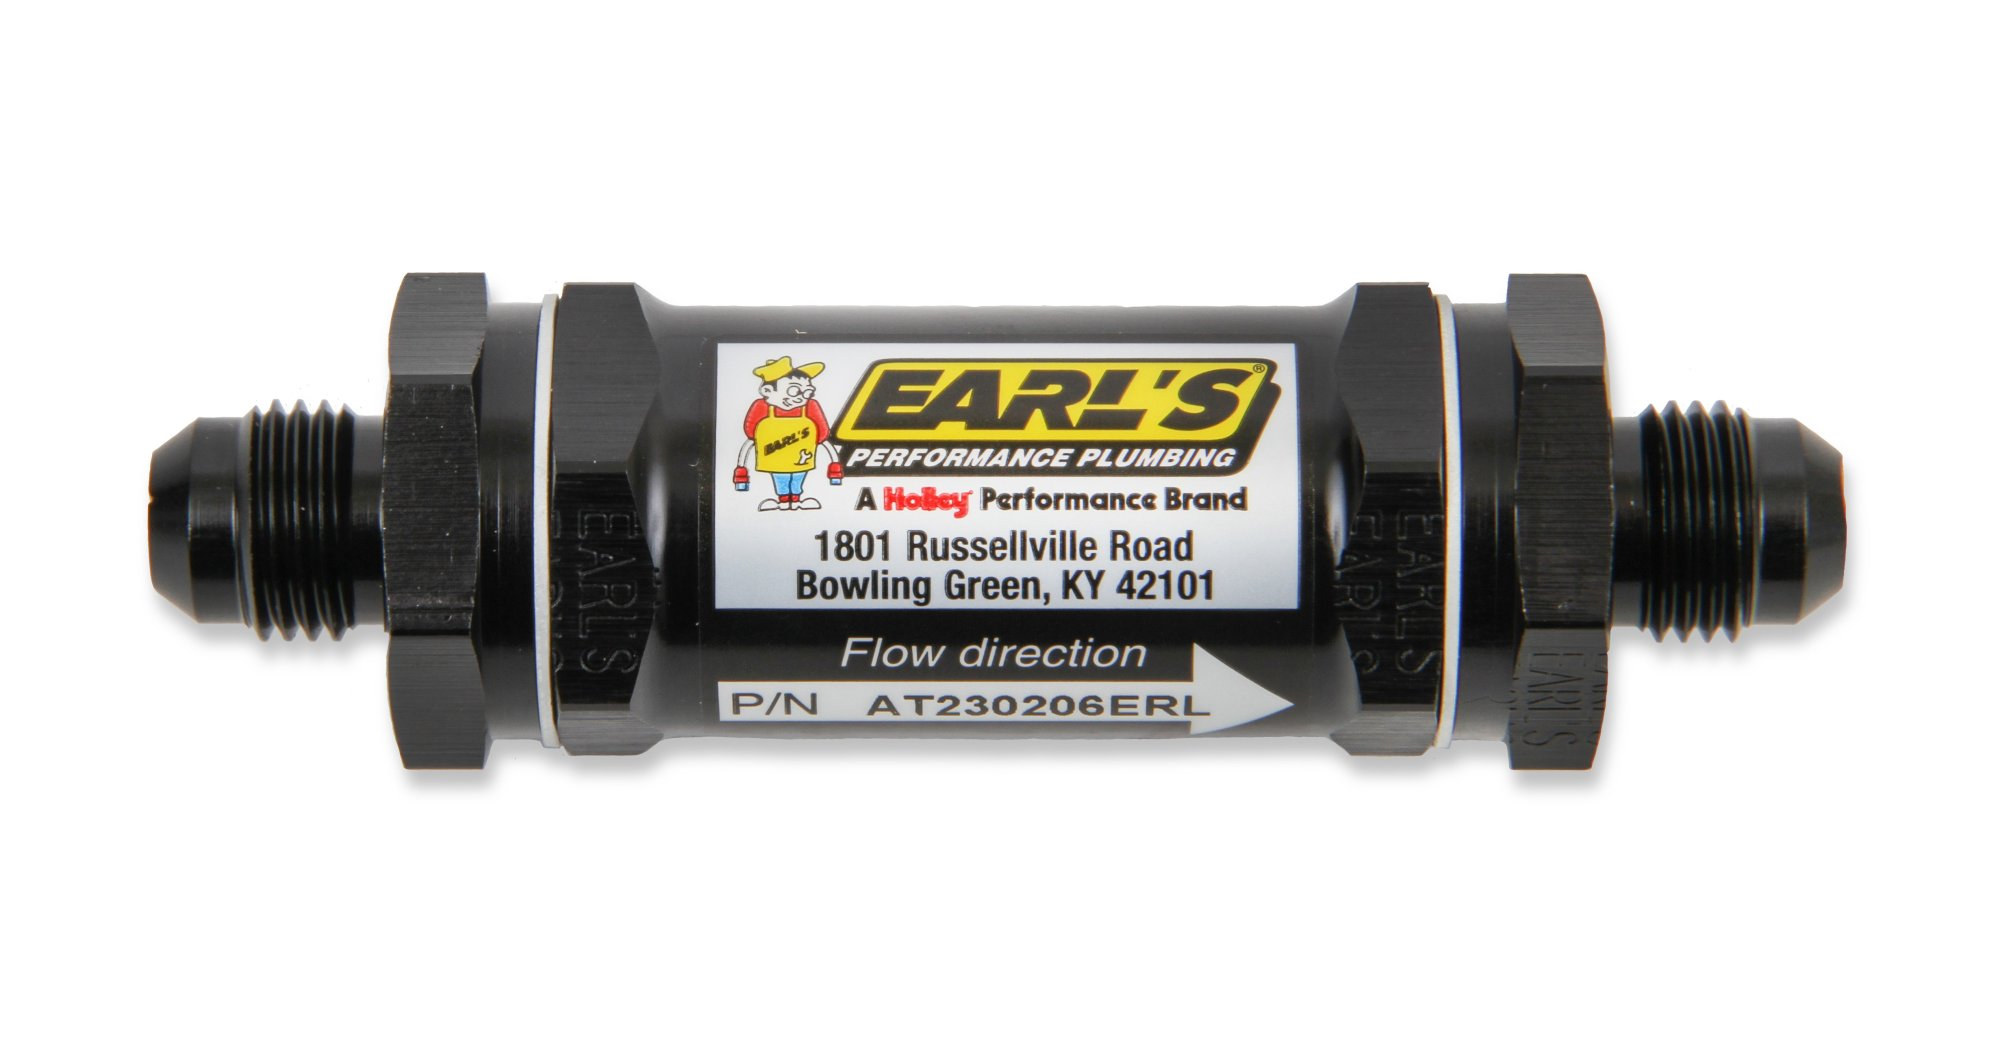 hight resolution of at230206erl earls fuel filter image